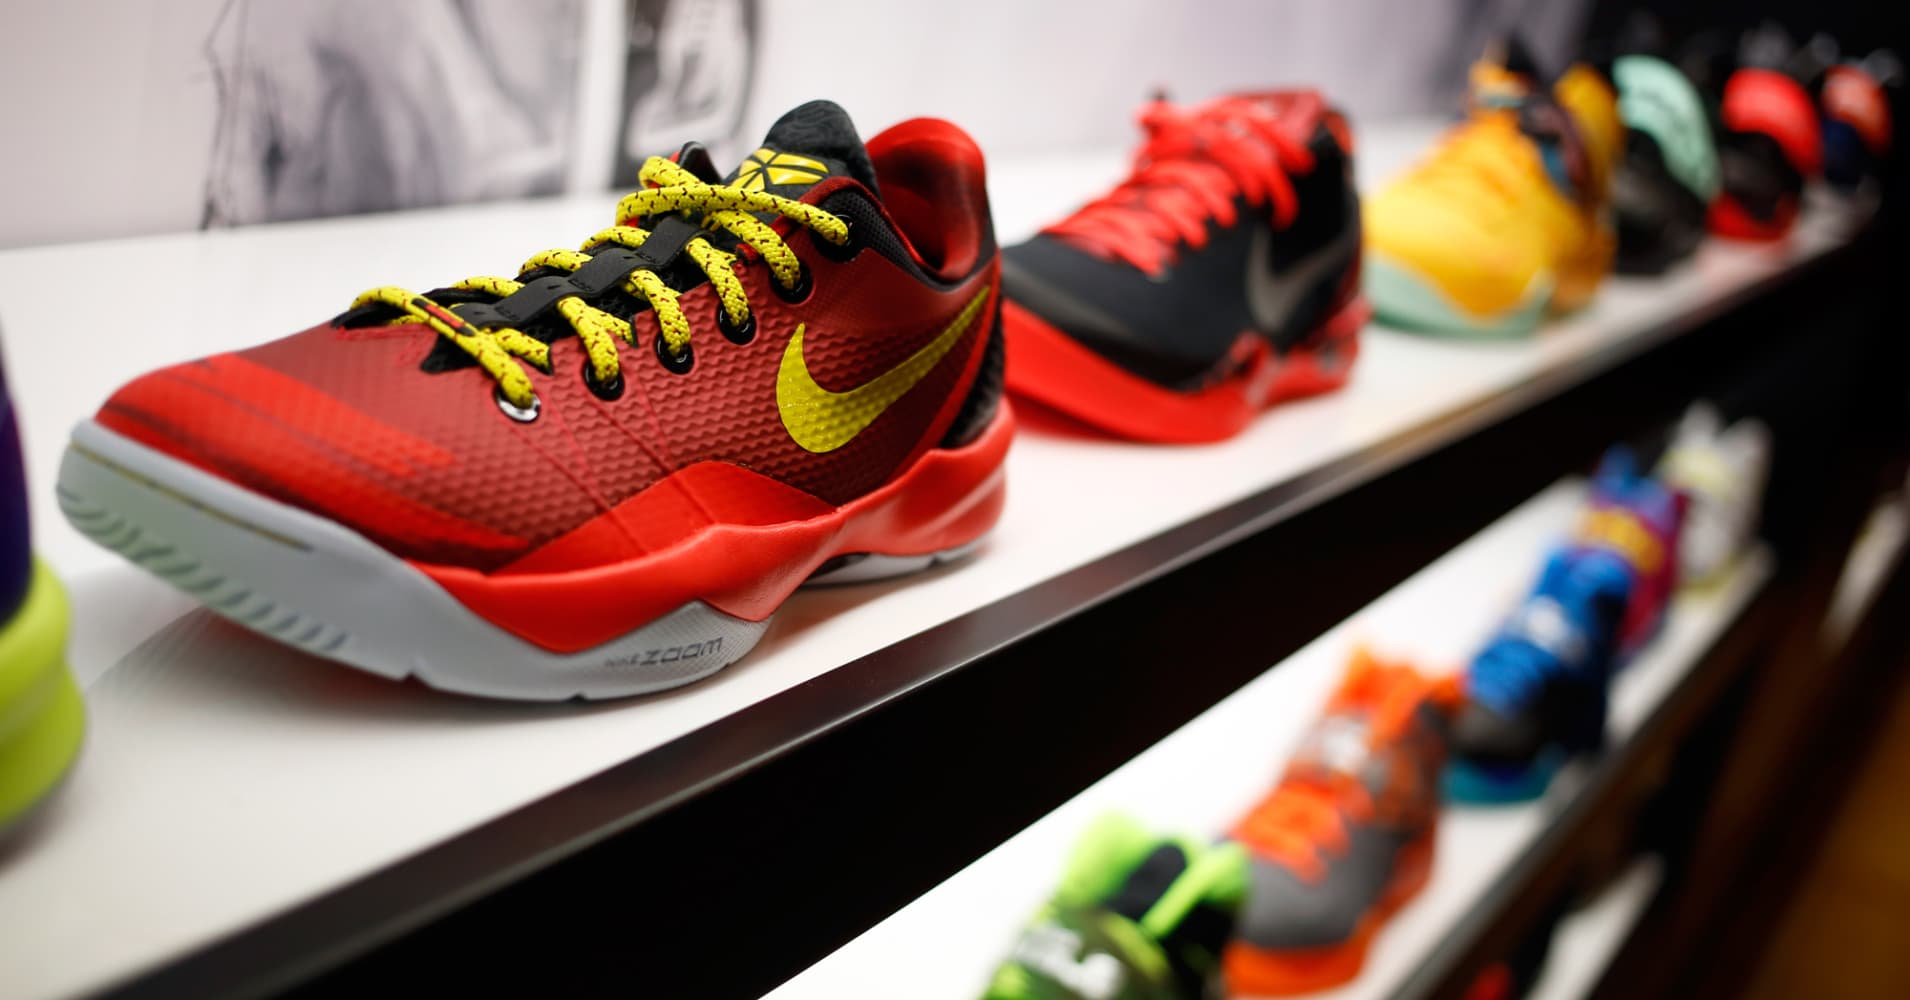 Foot Locker knows cool sneakers, and that's why stocks are rallying: Analyst